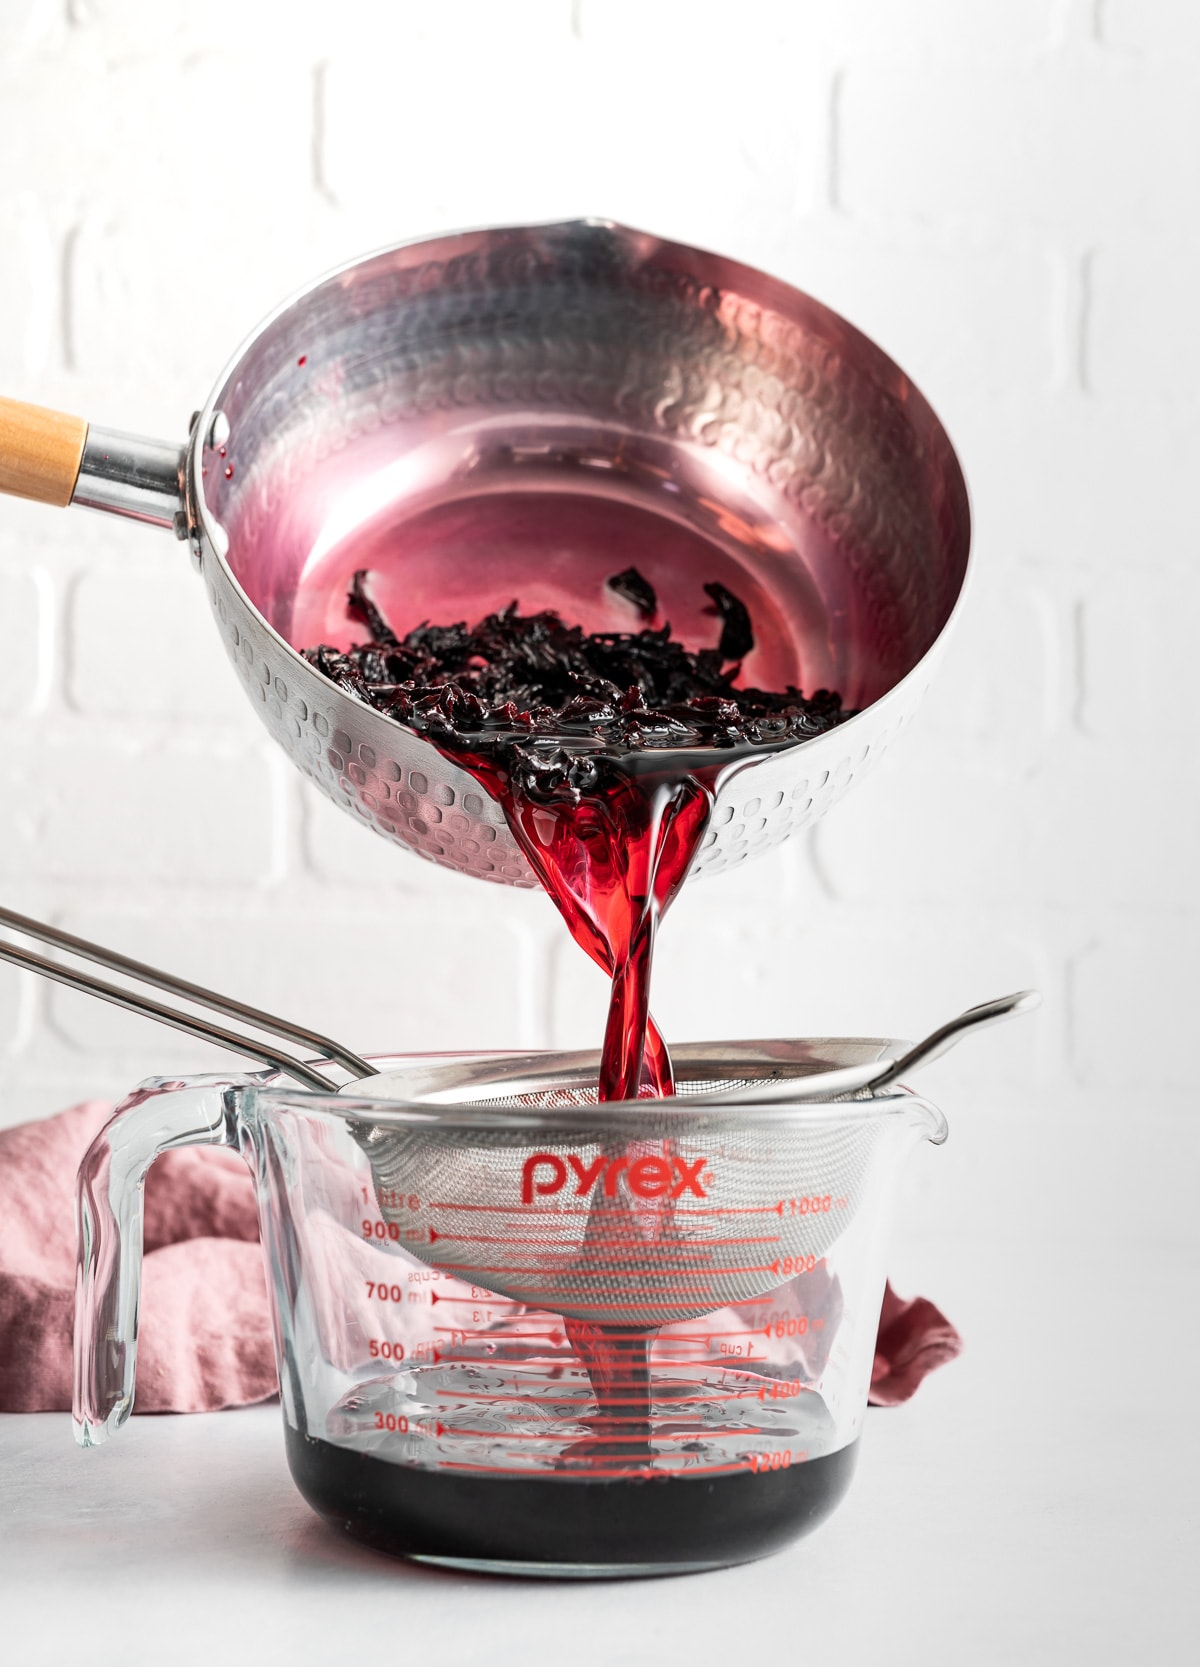 dark red hibiscus syrup in a pan being strained into a large glass measuring cup